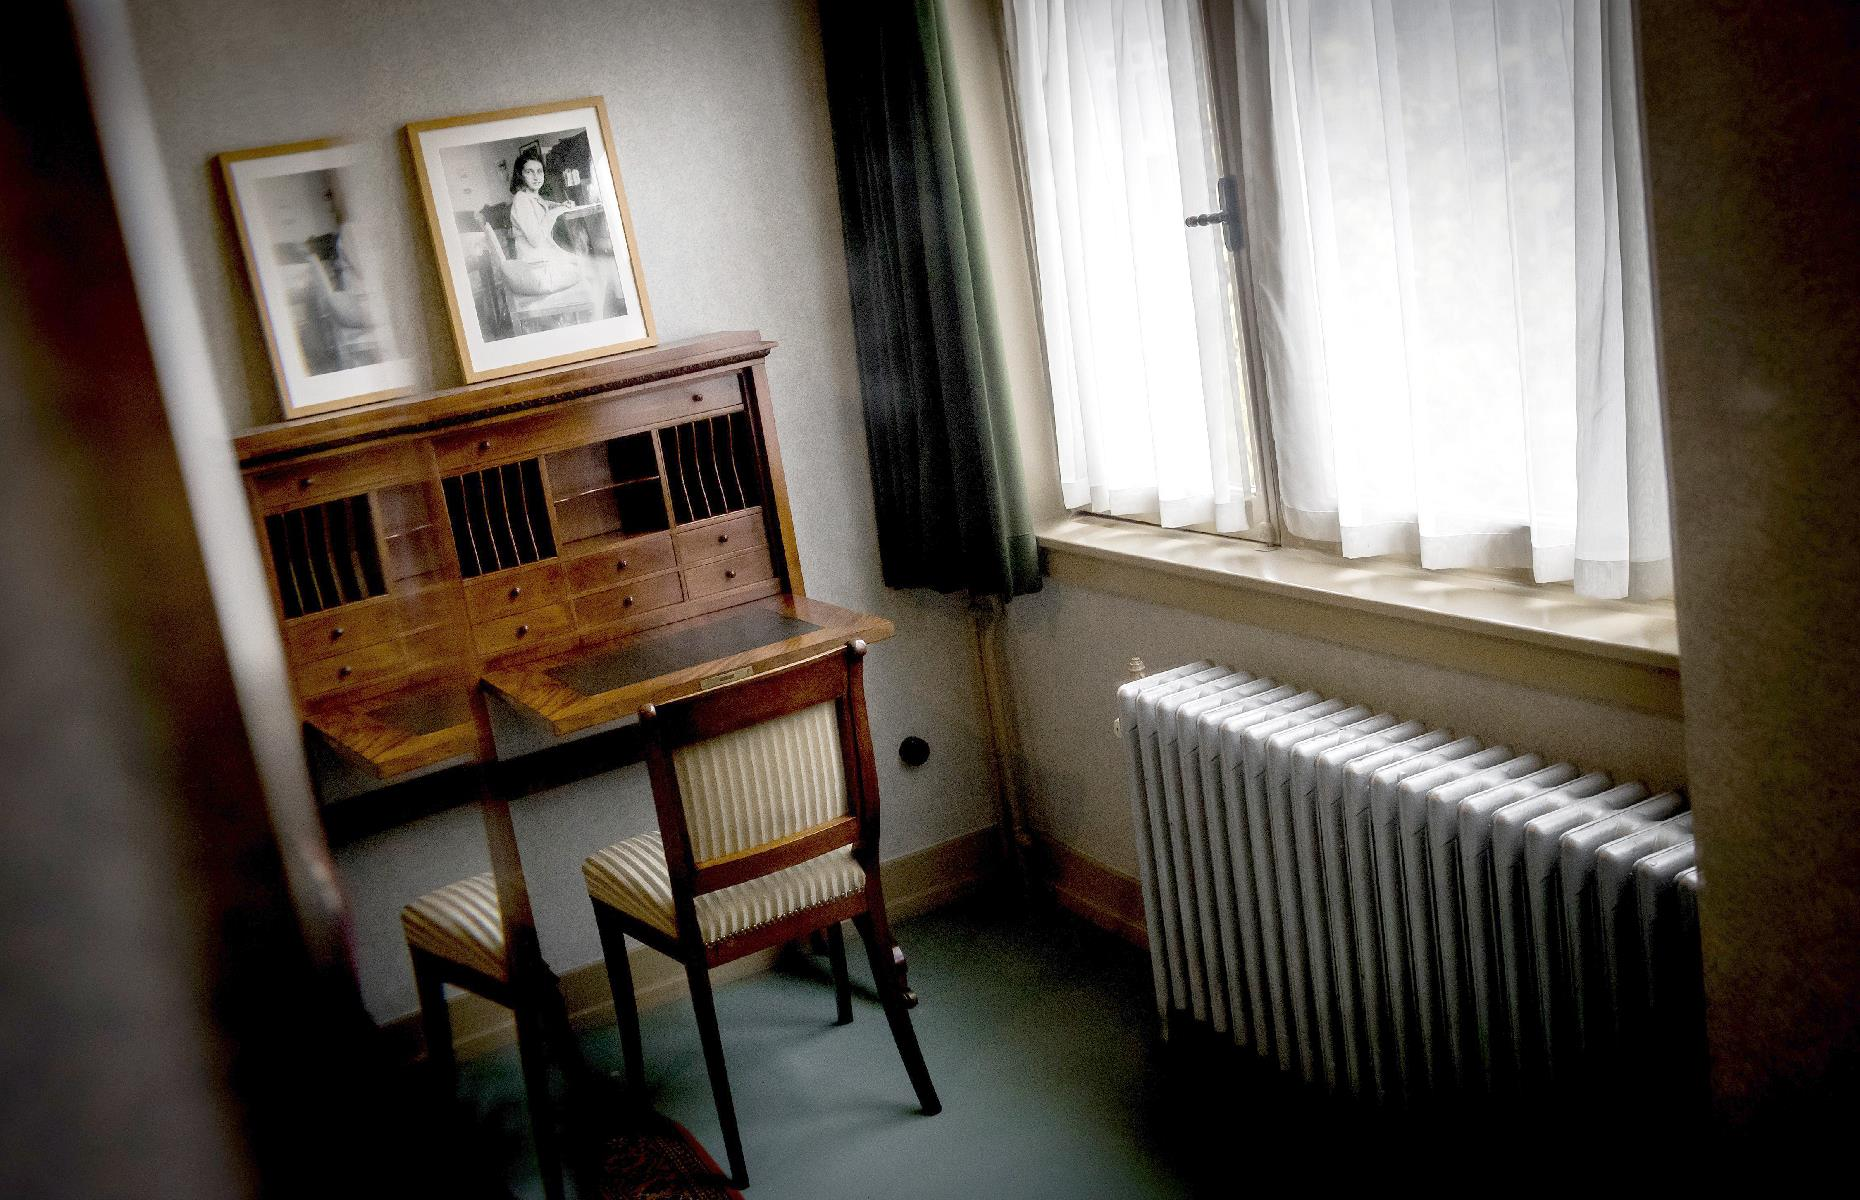 Slide 19 of 32: This unassuming canal-side house in Amsterdam was made famous by Anne Frank, a young Jewish girl who hid in a secret annex with her family during the Nazi regime and kept a diary of her experiences. Although Anne didn't survive the war, her diary was preserved and later published. This 2017 shot shows the room she occupied as preserved by the Anne Frank Foundation.